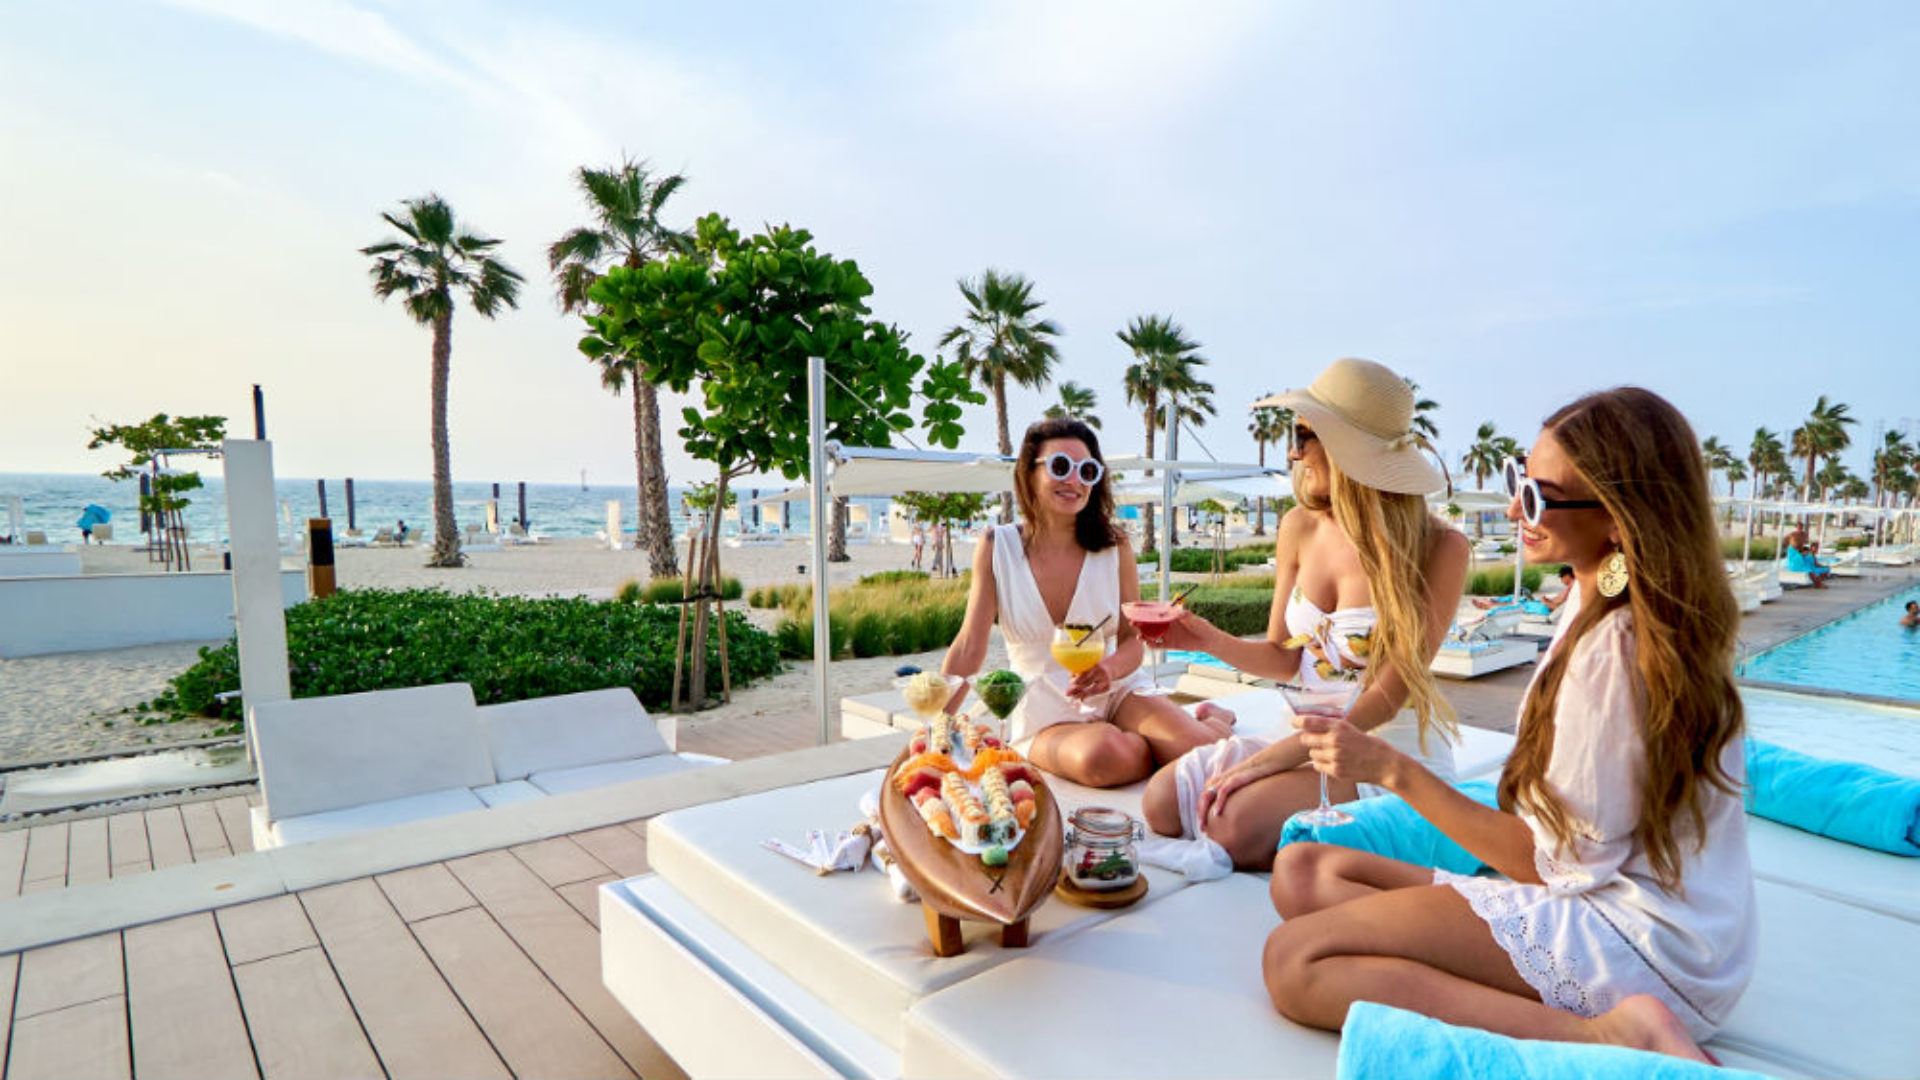 Girlfriends on a sun lounge at Nikki Beach Resort & Spa